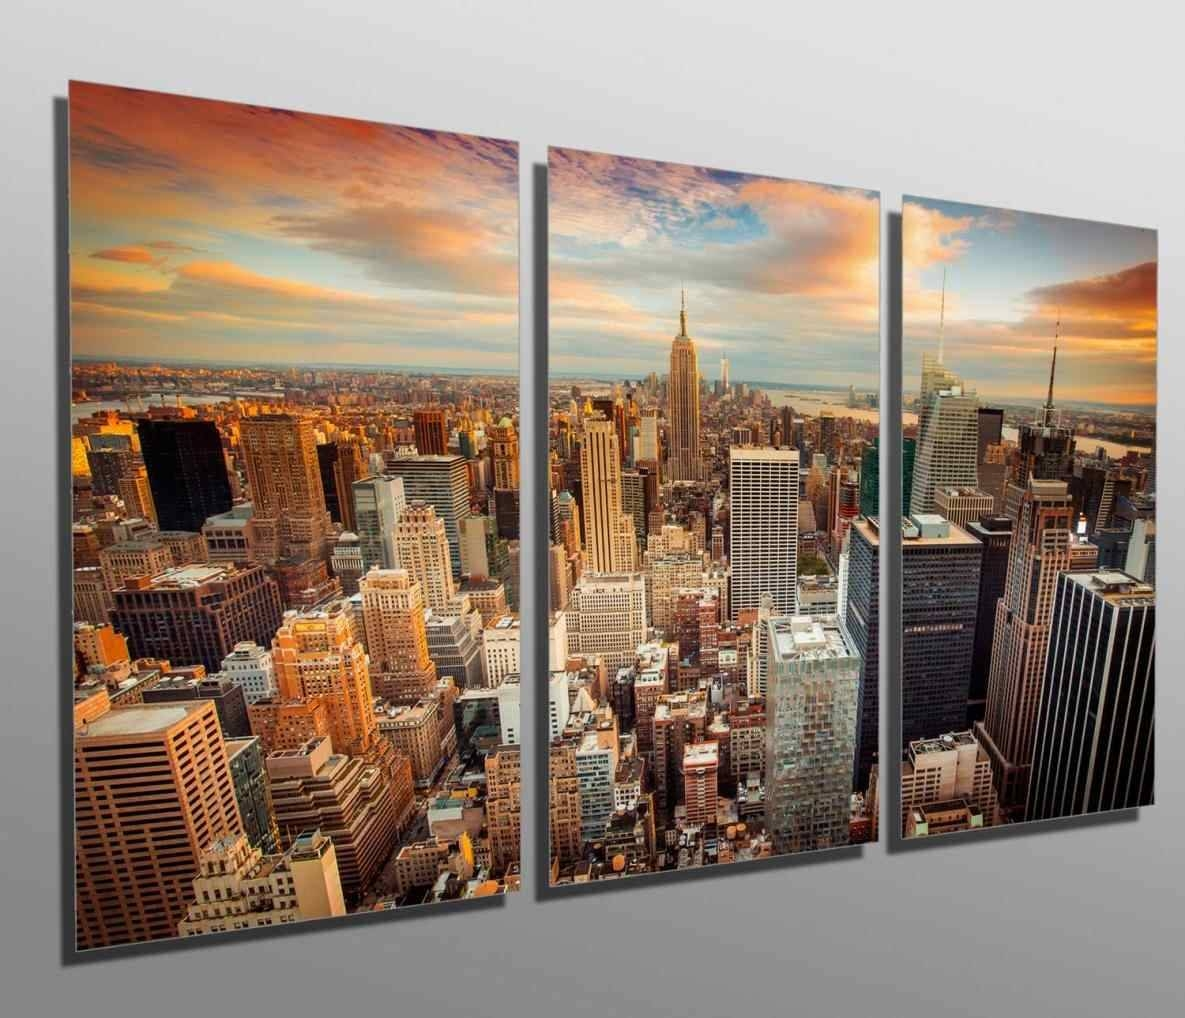 Metal Wall Art New York City Skyline | Home Interior Decor With Regard To Most Recently Released New York City Skyline Metal Wall Art (View 8 of 20)